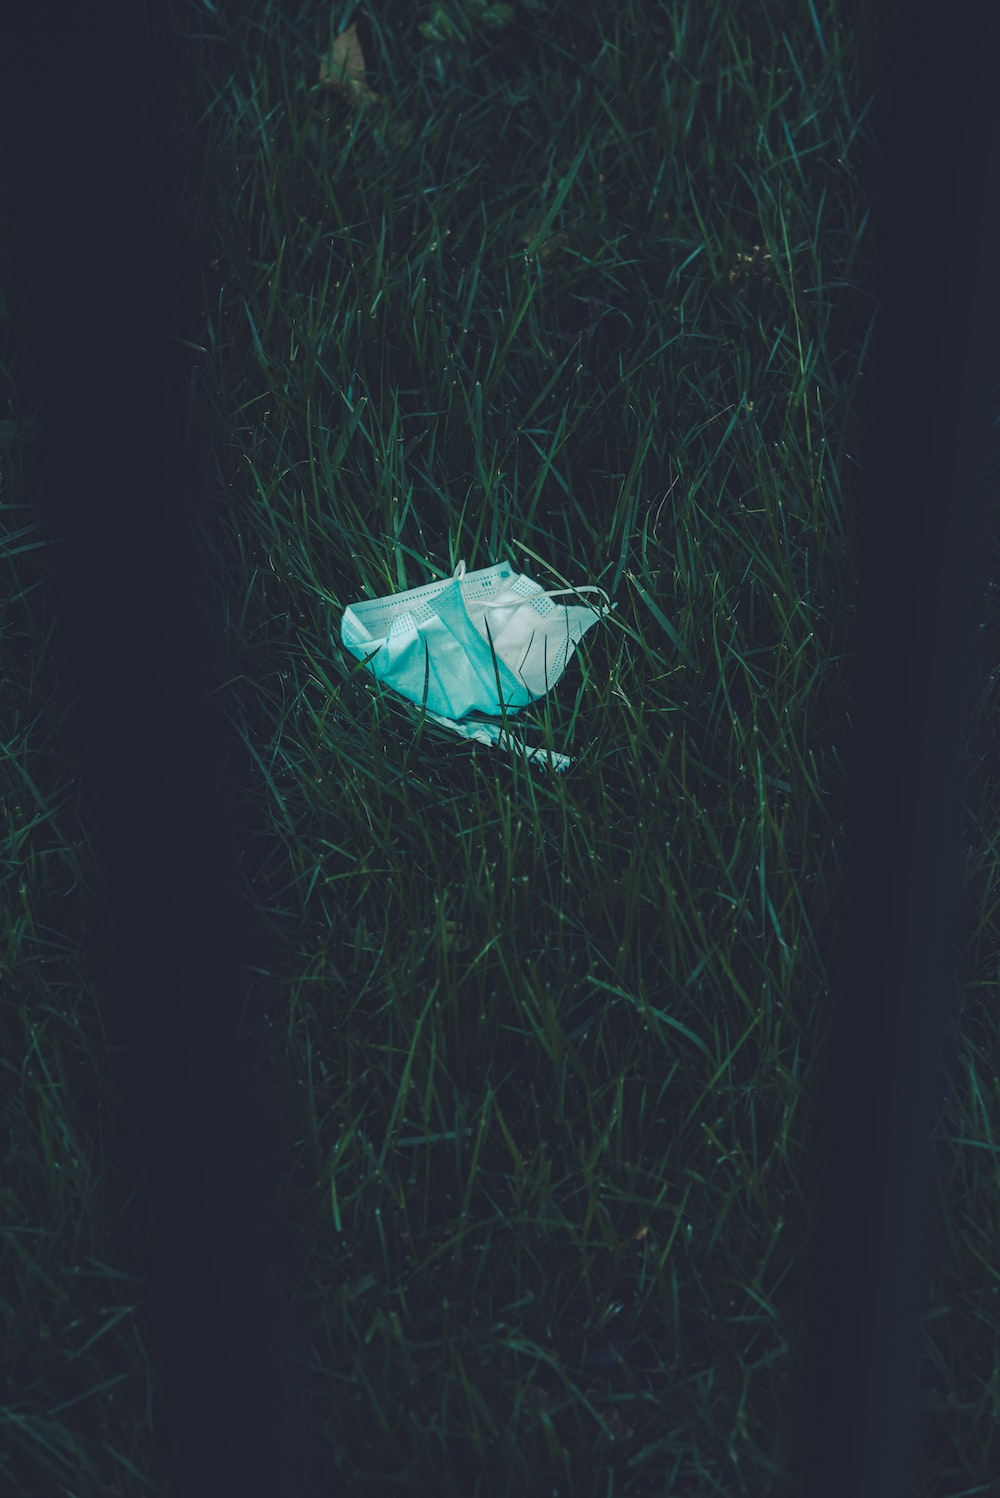 white plastic bag on green grass